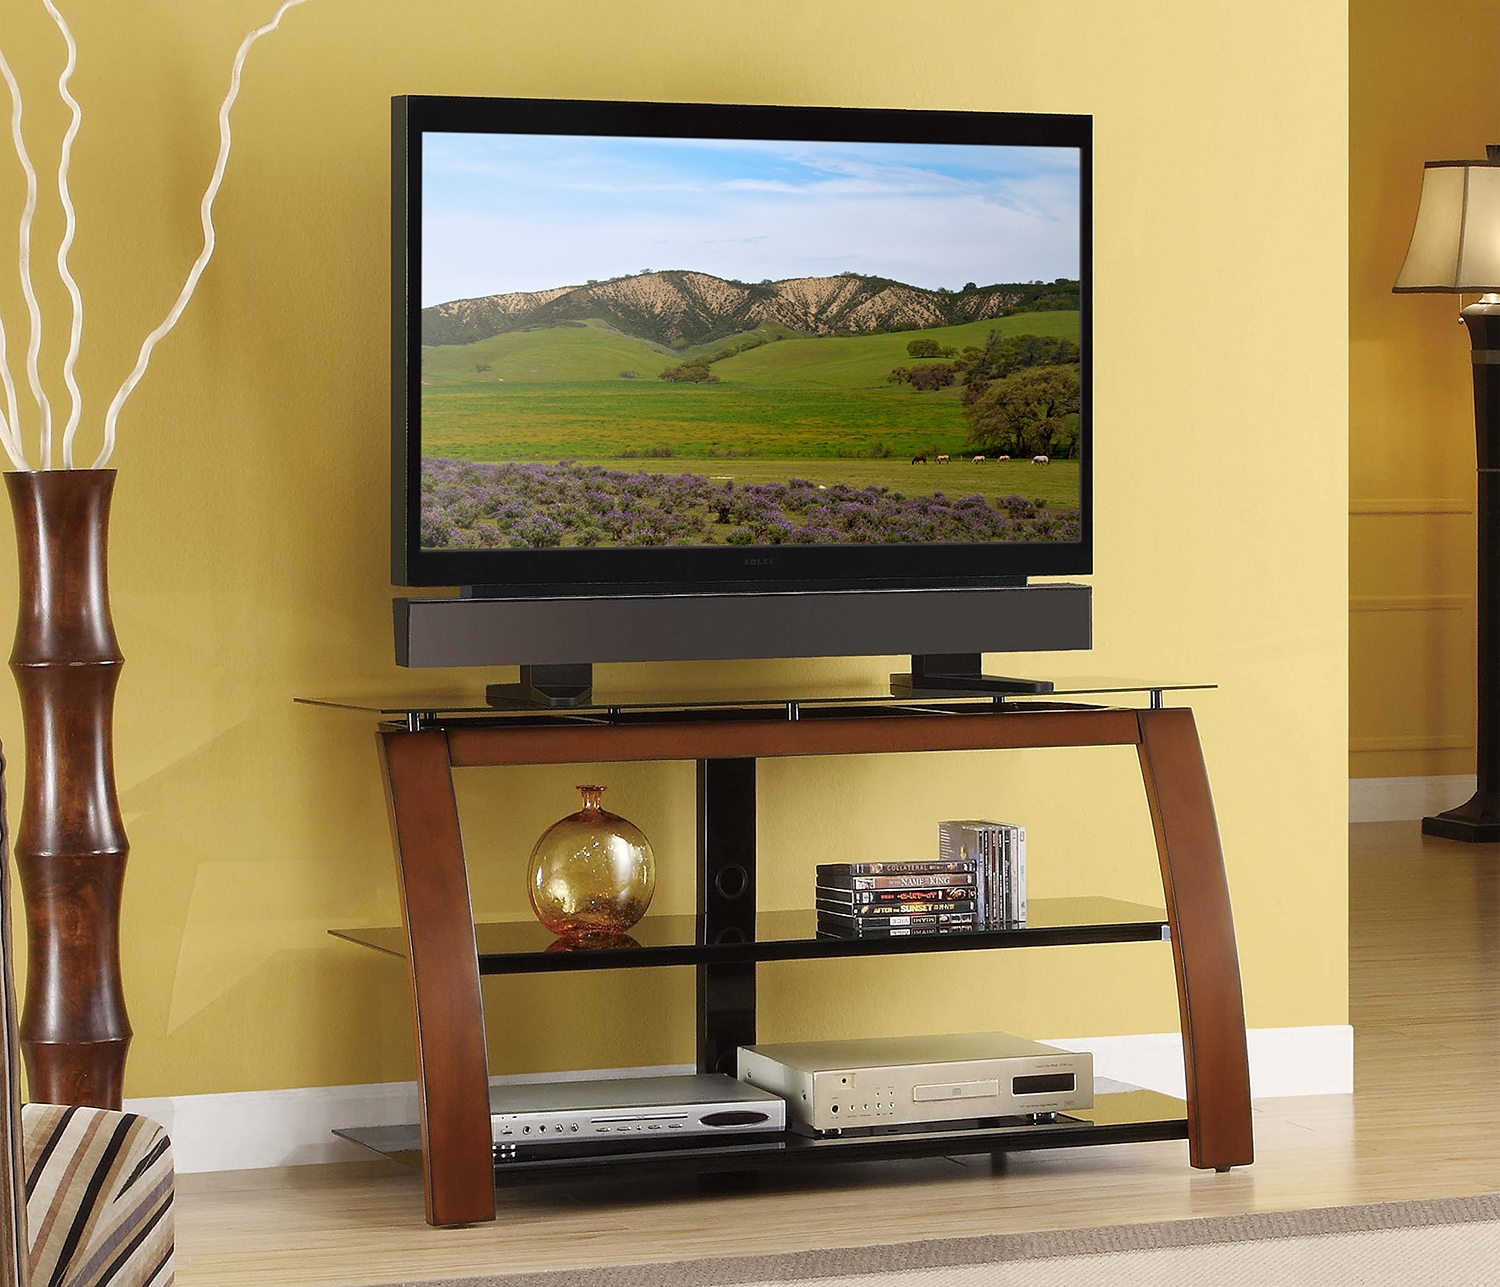 Cute whalen tv stand for home furniture design with whalen 3-in-1 tv stand